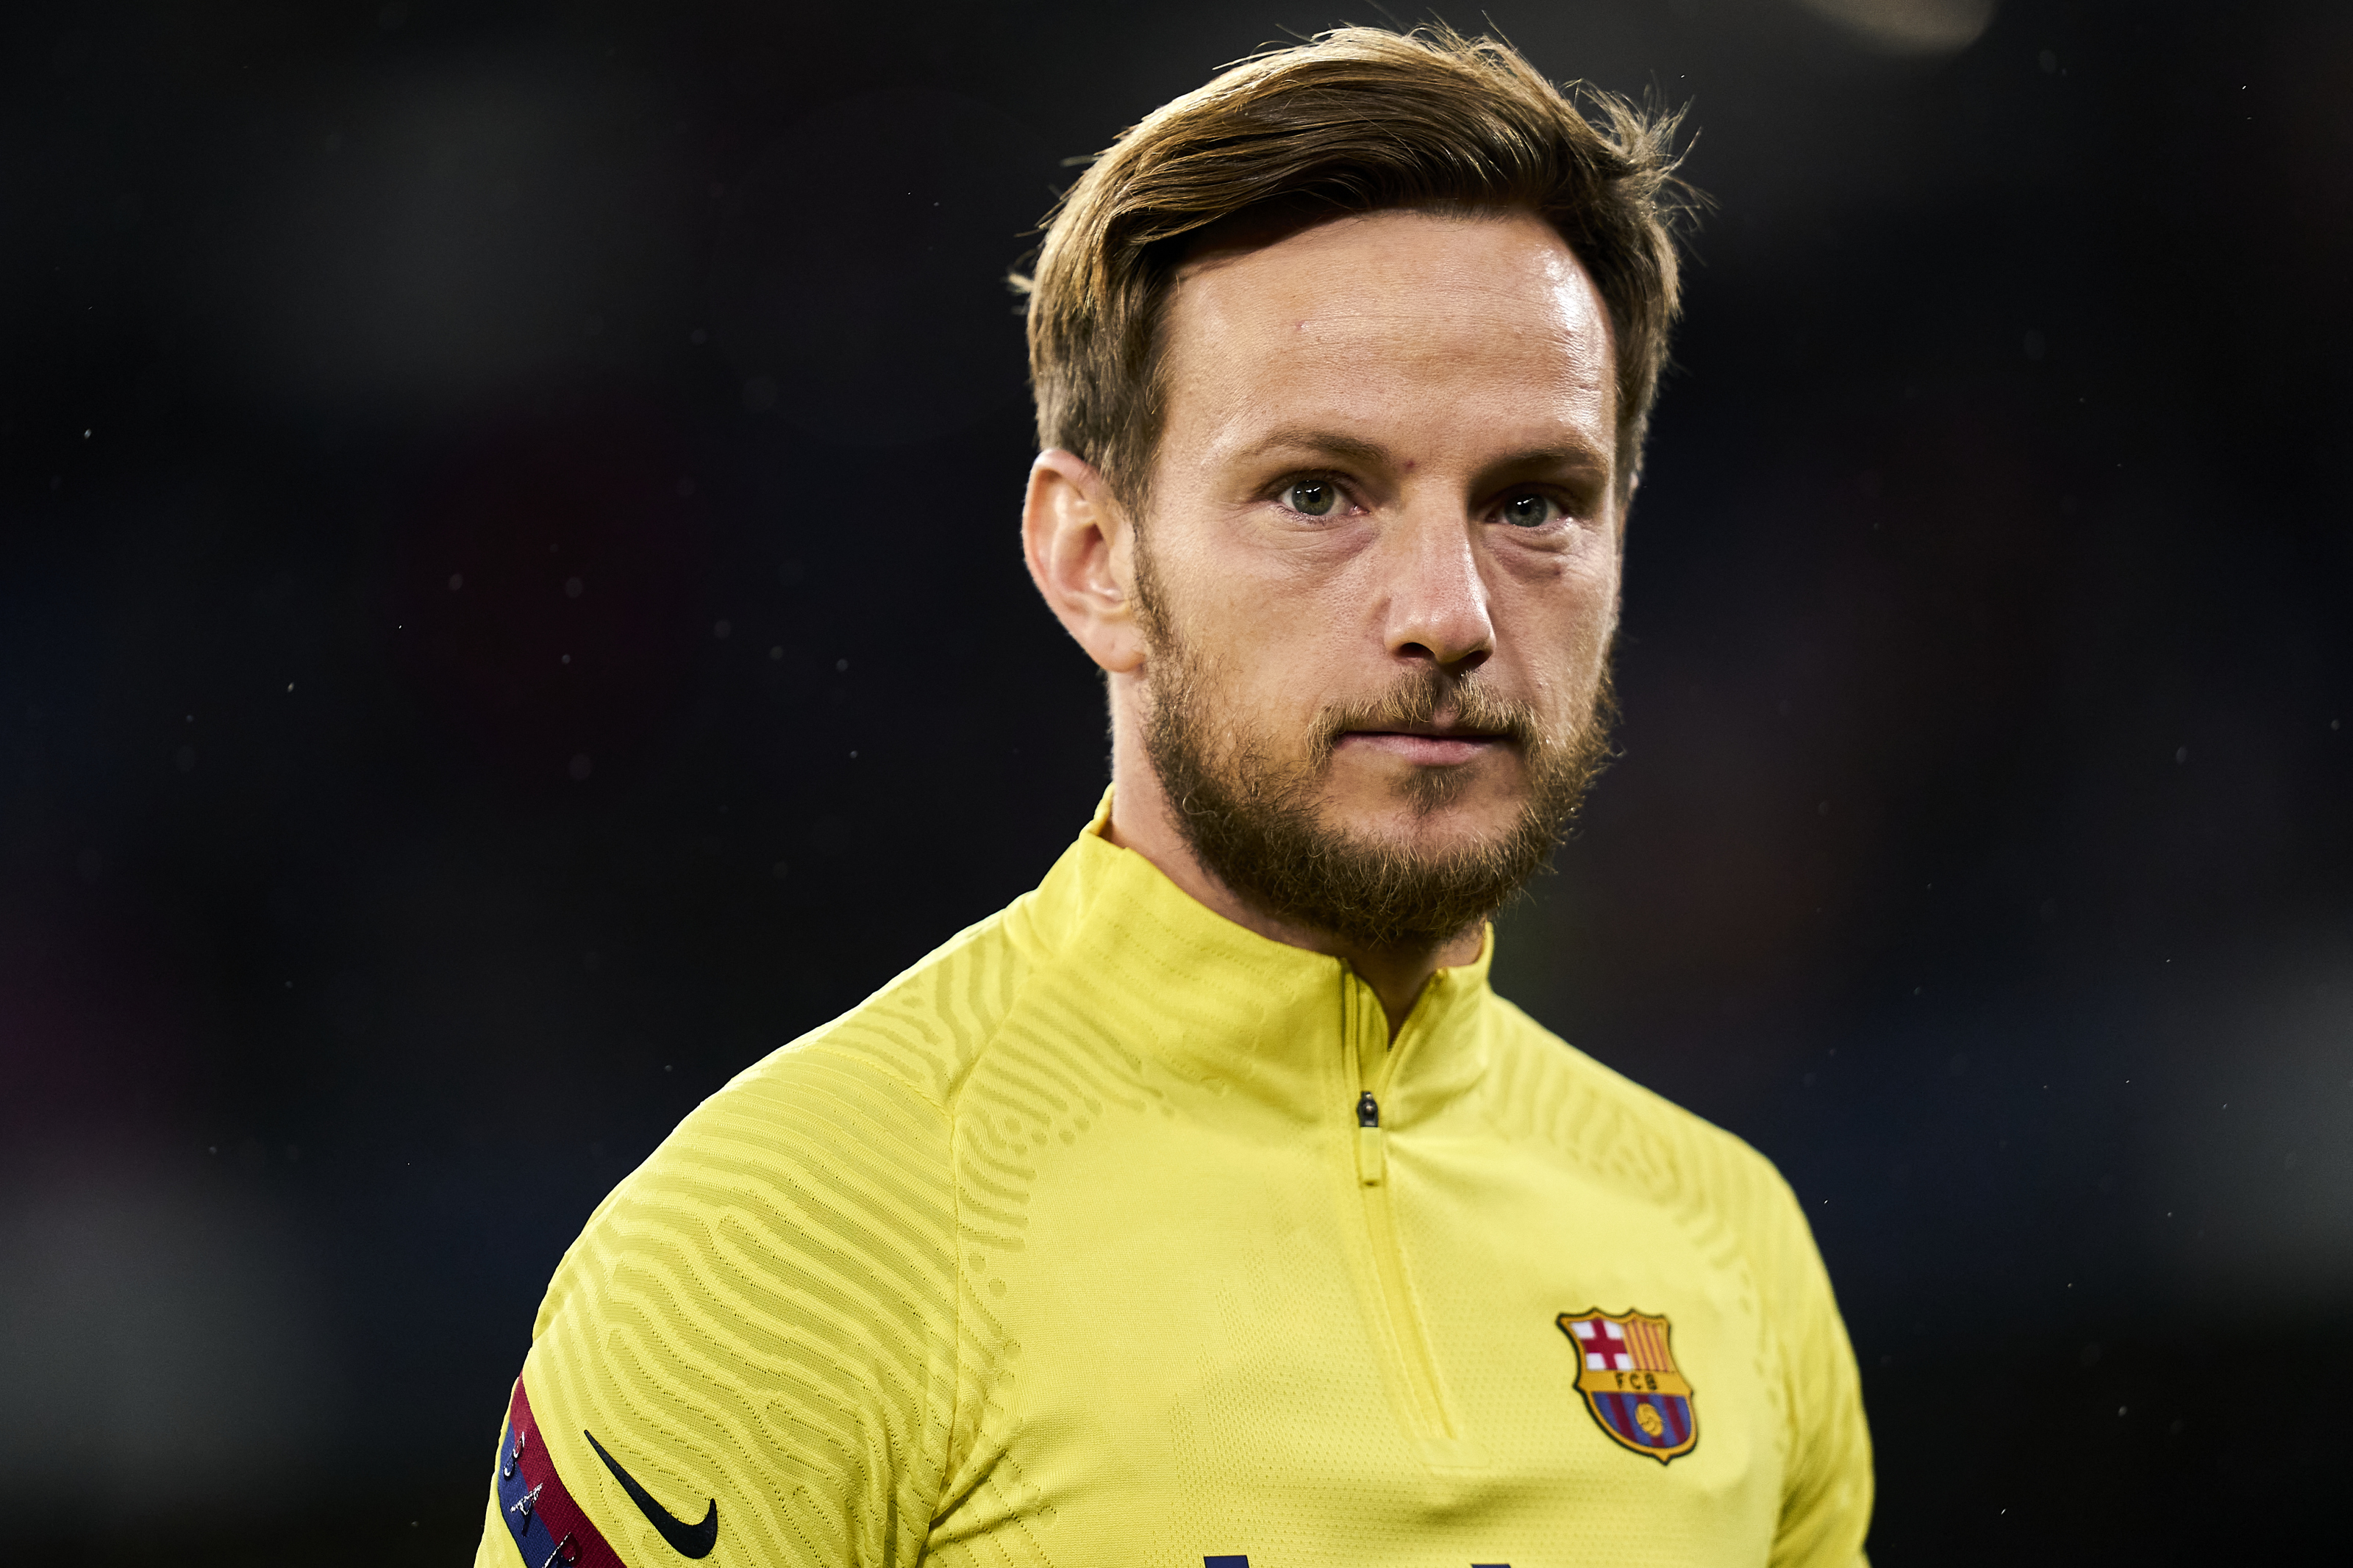 Ivan Rakitic set to join Barcelona�s arch rivals in historic betrayal - Everything Barca